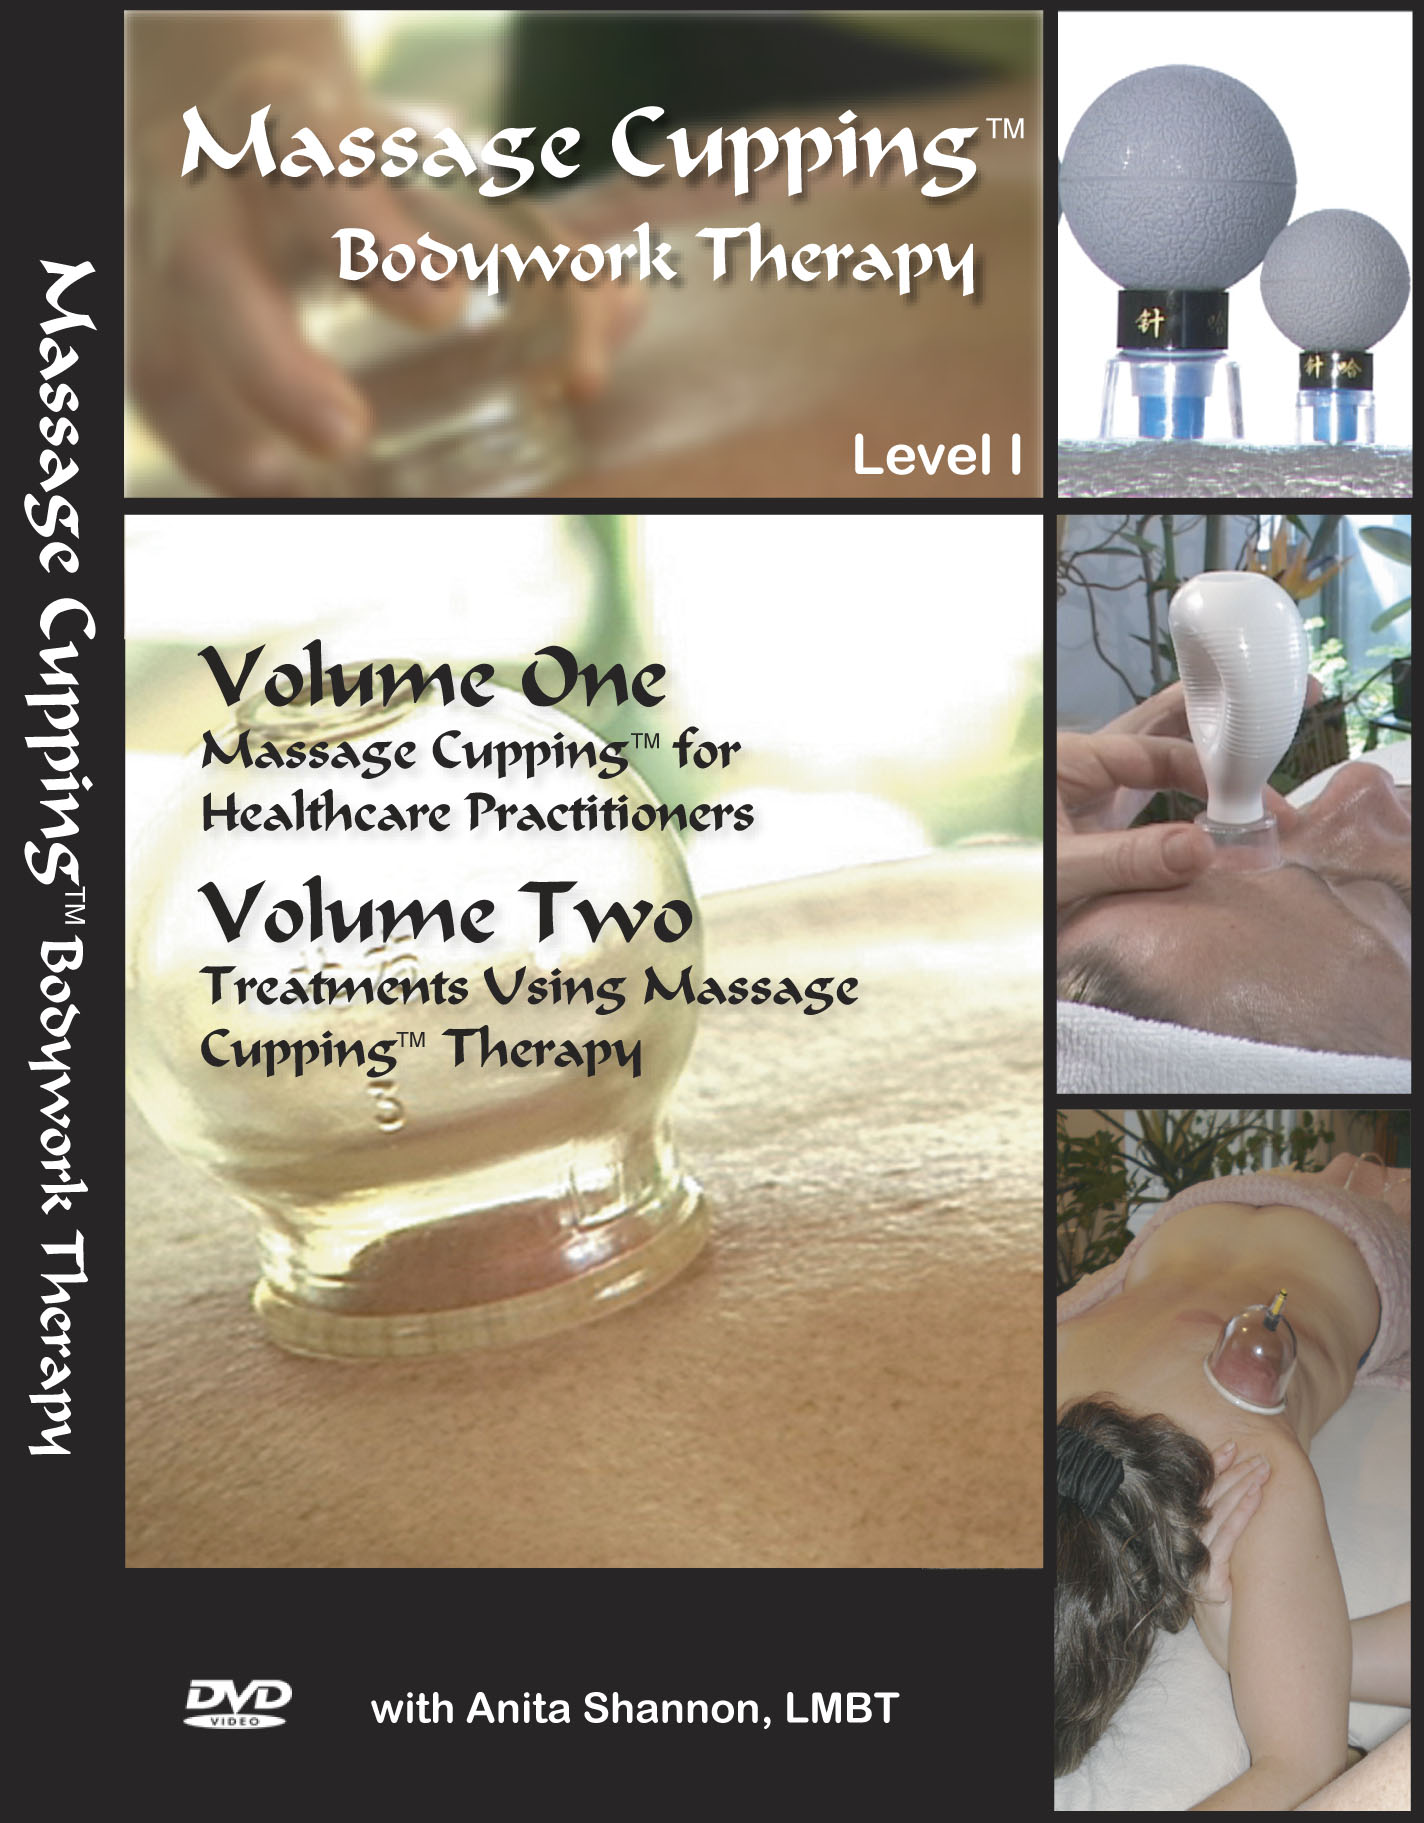 Dvd massage cupping bodywork therapy volume 1 and 2 products dvd massage cupping bodywork therapy volume 1 and 2 xflitez Gallery